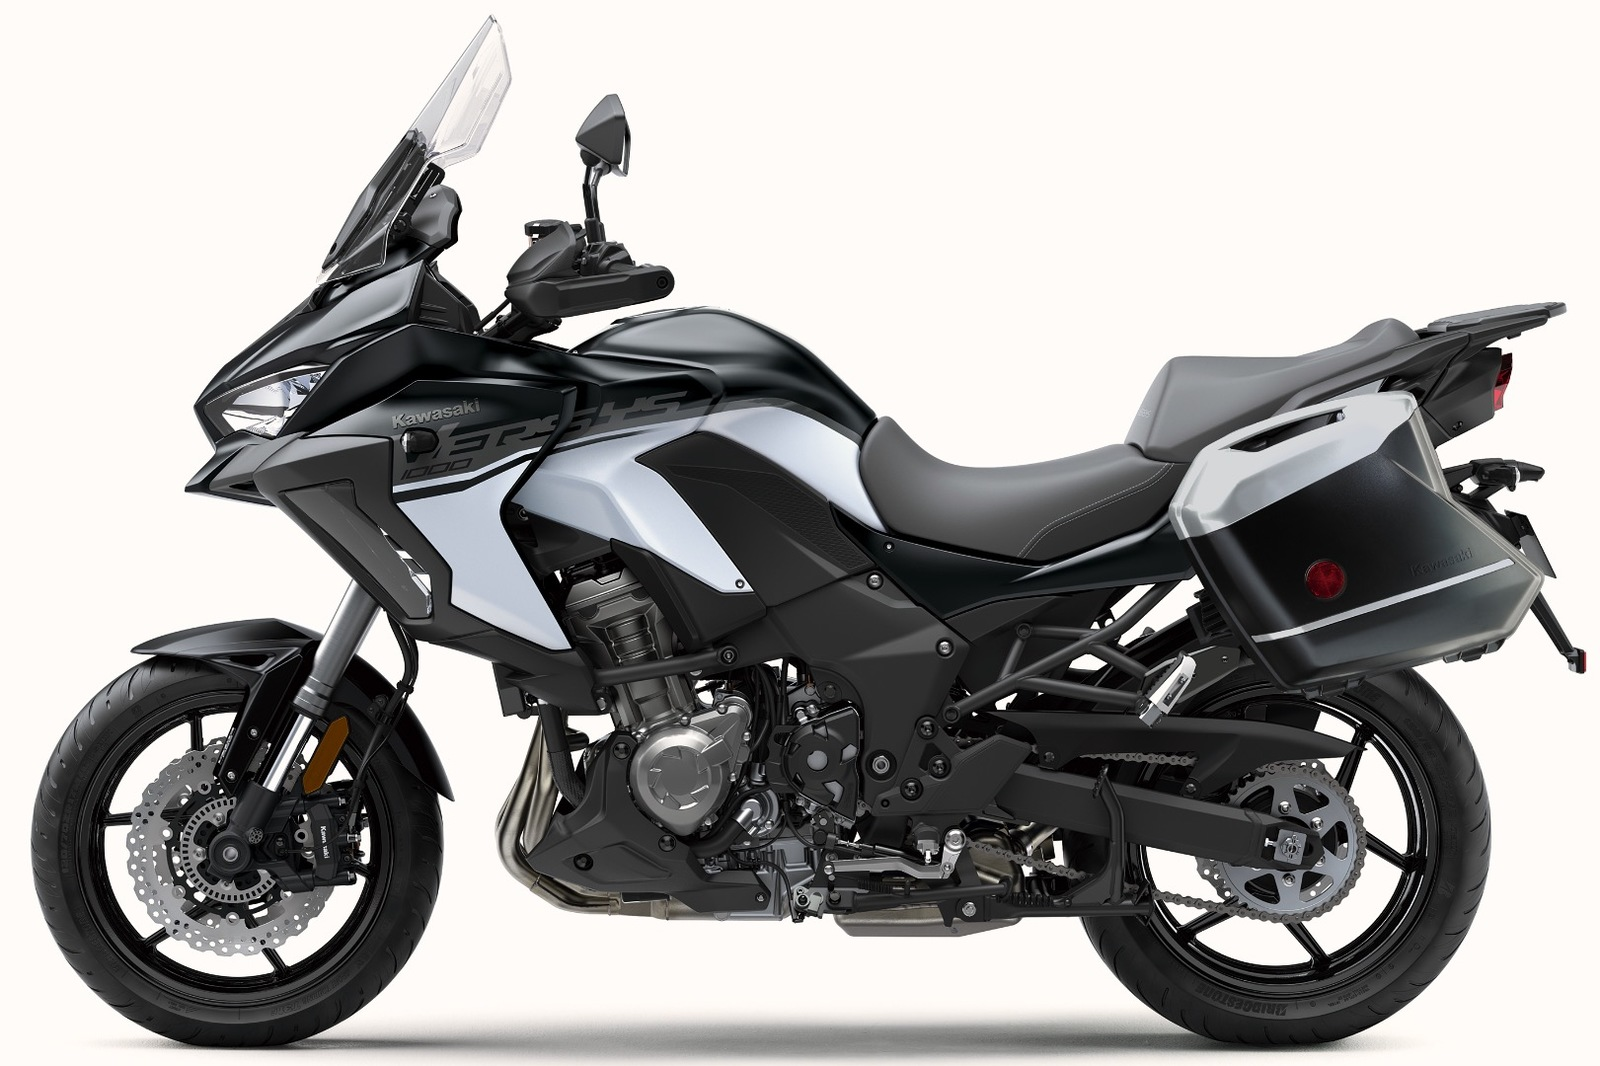 2019-Kawasaki-Versys-1000-SE-LT-First-Look-Touring-Adventure-Motorcycle-2.jpg